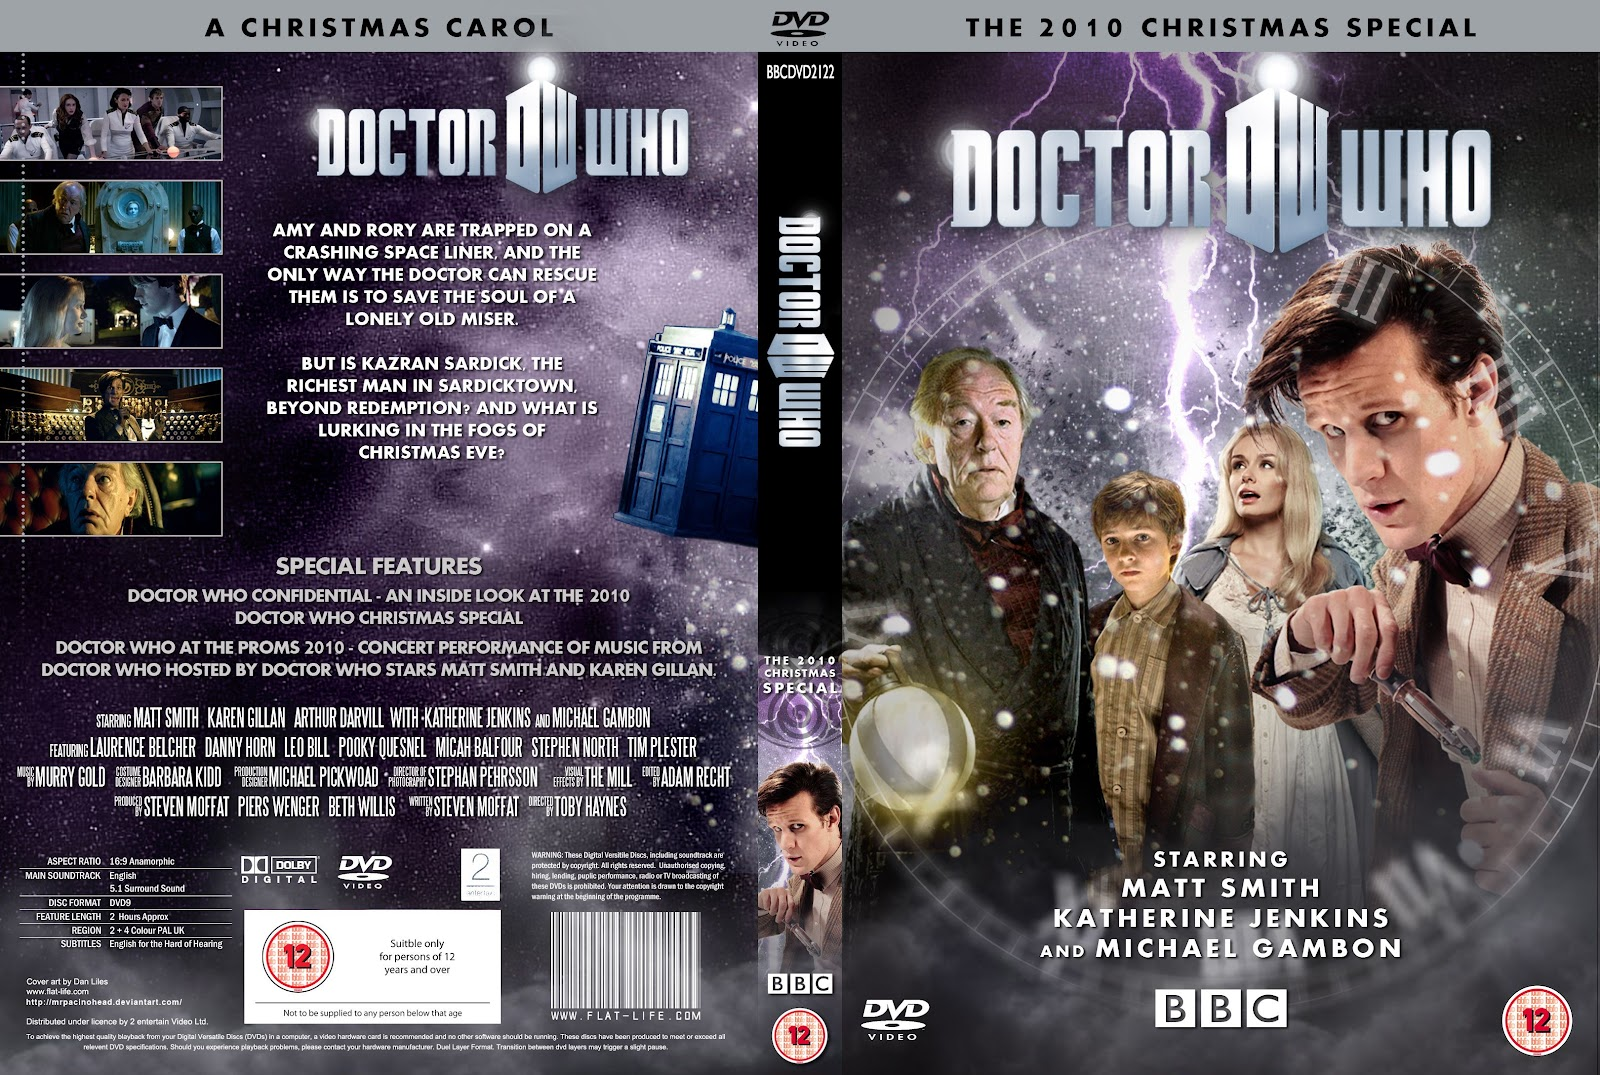 Capa DVD Doctor Whow The 2010 Christmas Special